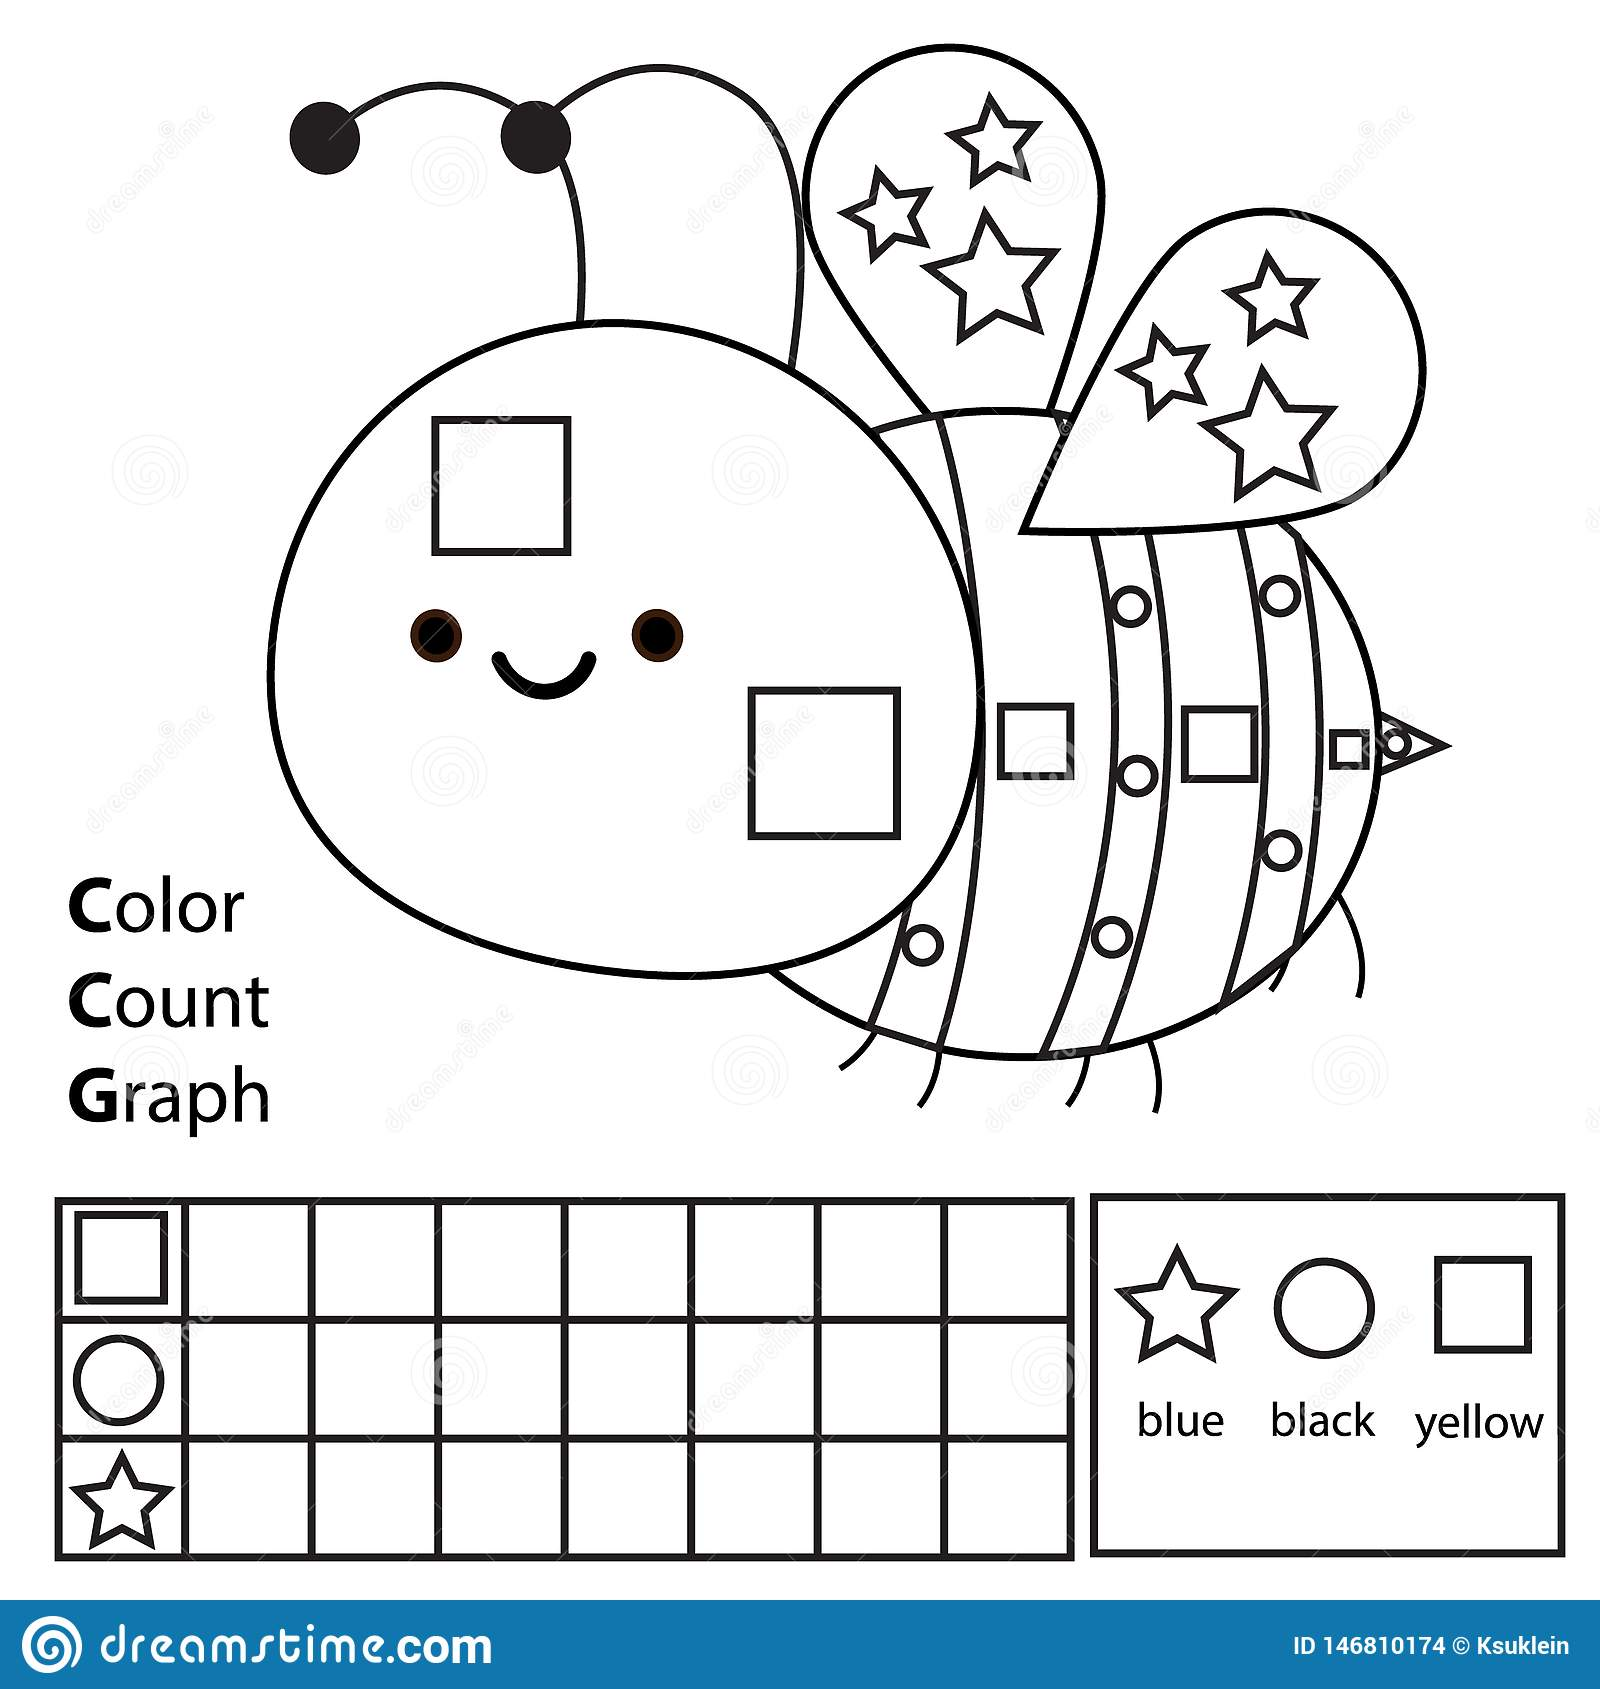 Count Shapes Worksheet